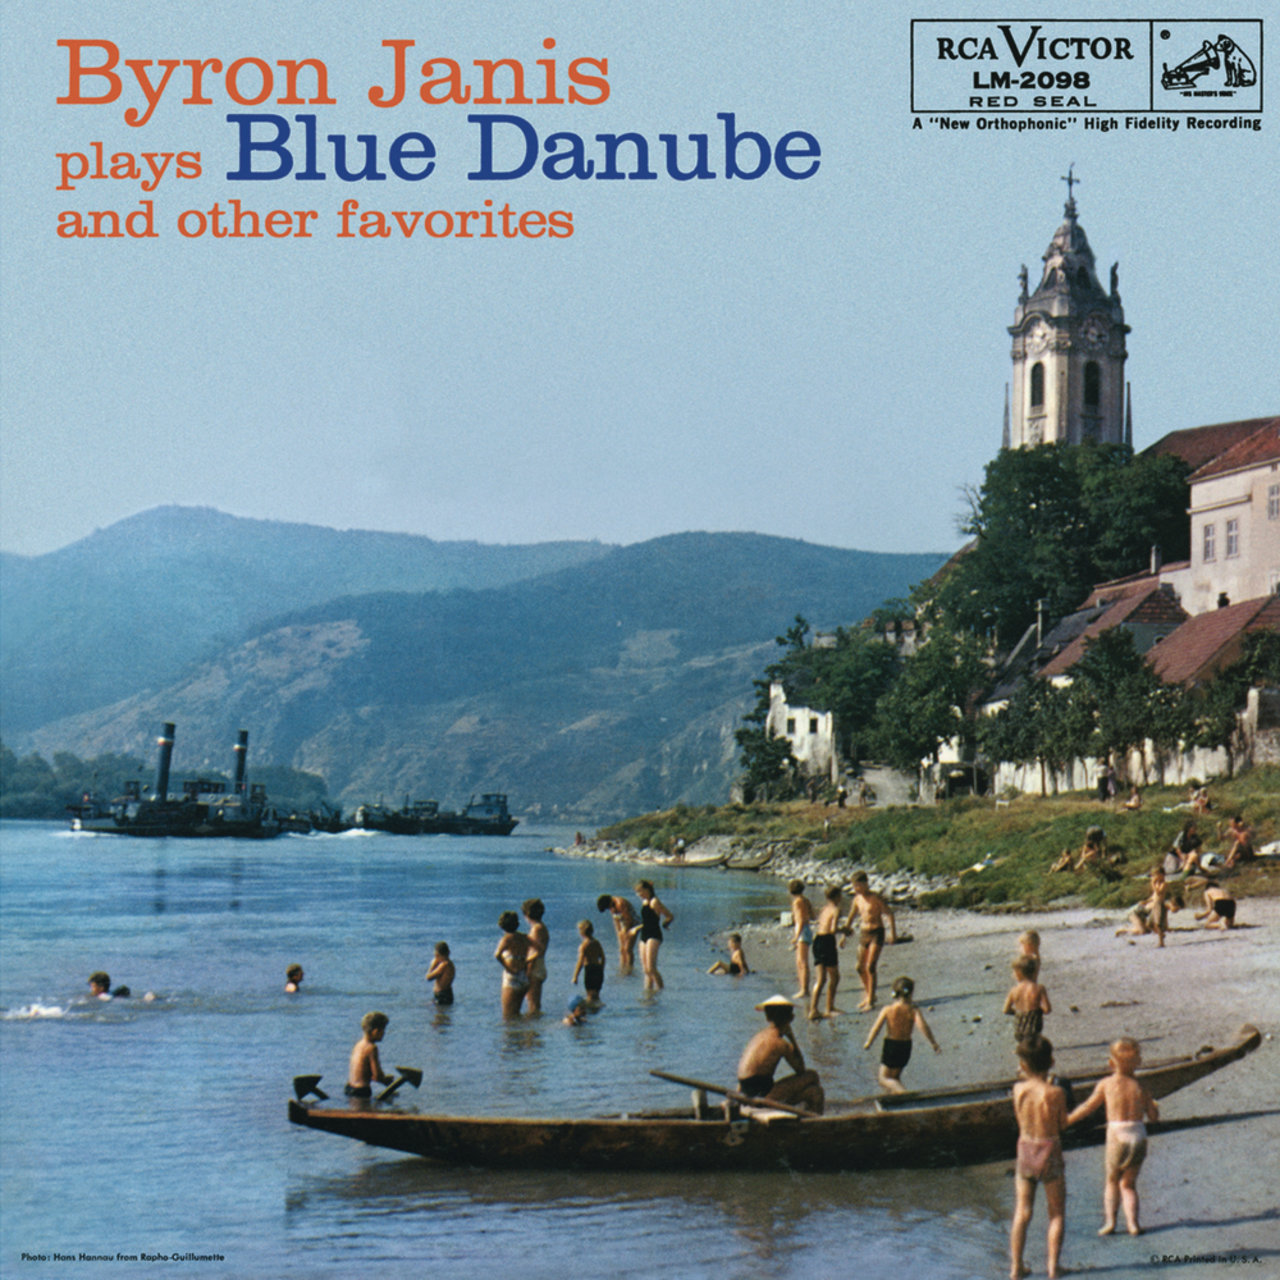 Byron Janis Plays Blue Danube and Other Favorites   Back:  Byron Janis Plays Blue Danube and Other Favorites  Byron Janis, Pianist  Side 1  On The Beautiful Blue Danube Waltz, Op 314 7:04  Waltzes, Op. 39, Nos. 1-16: Waltz in A-Flat Major, Op. 39/15 1:45  Waltzes, Op. 39, Nos. 1-16:Waltz in B Major, Op. 39/1:Tempo giusto 0:45  Waltzes, Op. 39, Nos. 1-16: Waltz in E Major, Op. 39/2: Dolce 1:27  Waltzes, Op. 39, Nos. 1-16: Waltz in C-Sharp Major, Op.39/6: Vivace 0:52  Valse brilliant, in E Minor, No. 2 from Waltzes Op.34 5:14  Waltz No. 1 in G Minor, Op. posth 2:44  Ballade No.1 in G Minor, Op.23 9:32  Etude No. 8 in F Major from 12 Etudes, Op. 10 2:28  Liebestraum No. 3 in A-Flat 4:29  Hungarian Rhapsody No. 6 in D-Flat 7:07   Recorded between 1947-1959   Total Length: 43:18